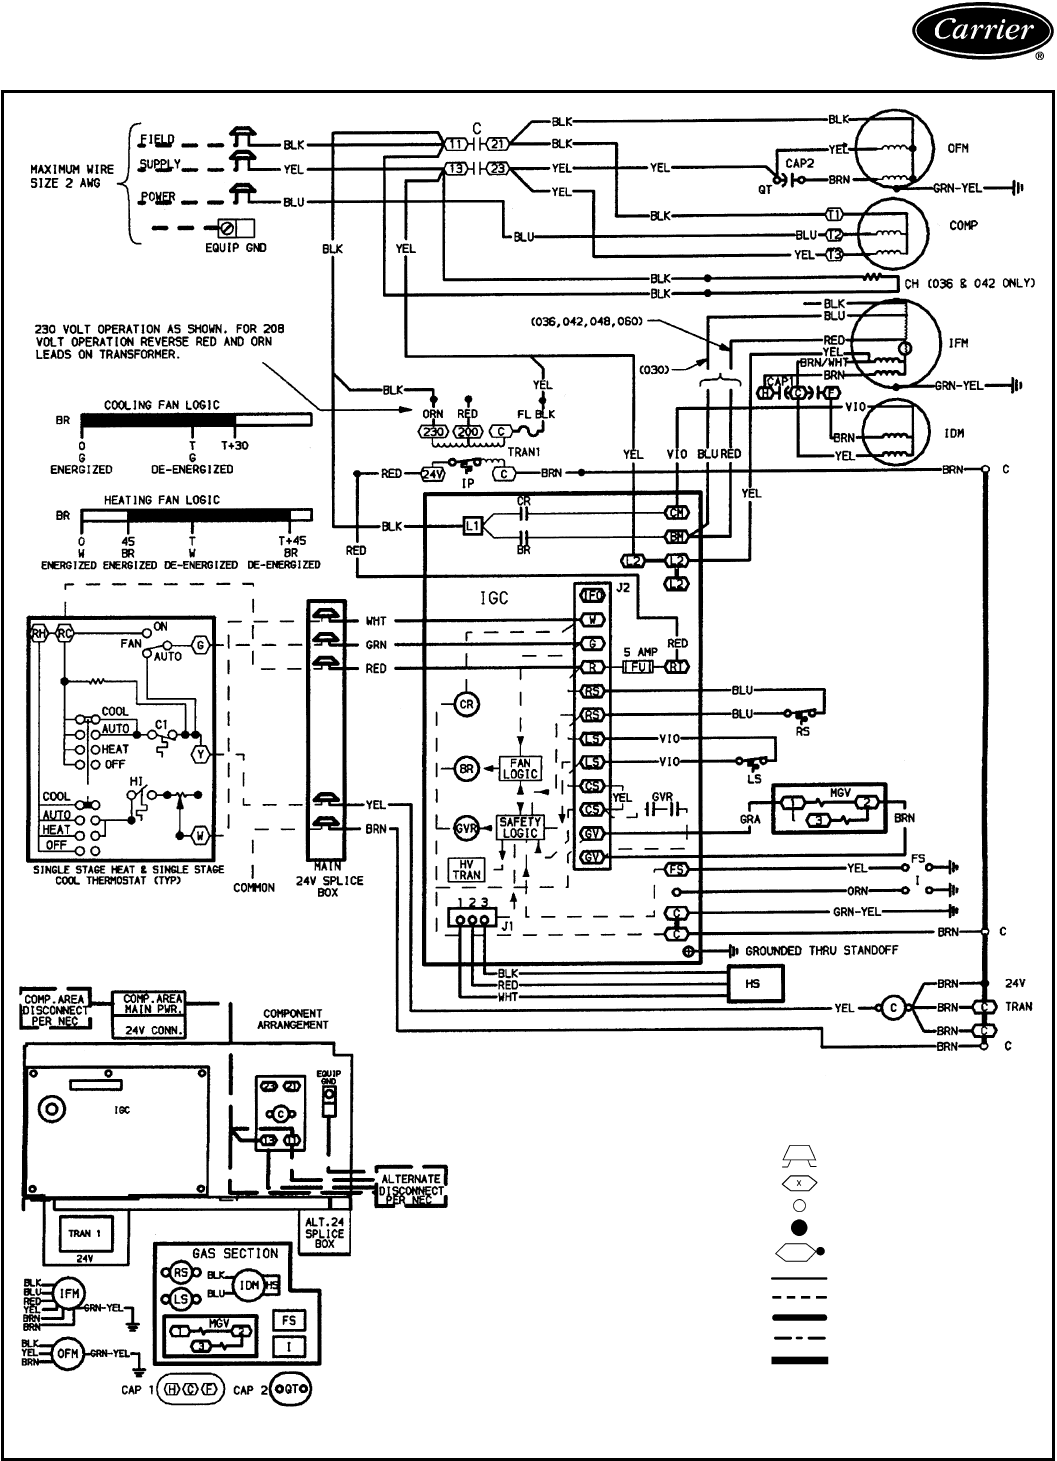 carrier hvac thermostat wiring diagram images diagram furthermore hvac contactor wiring diagram on wiring a mini